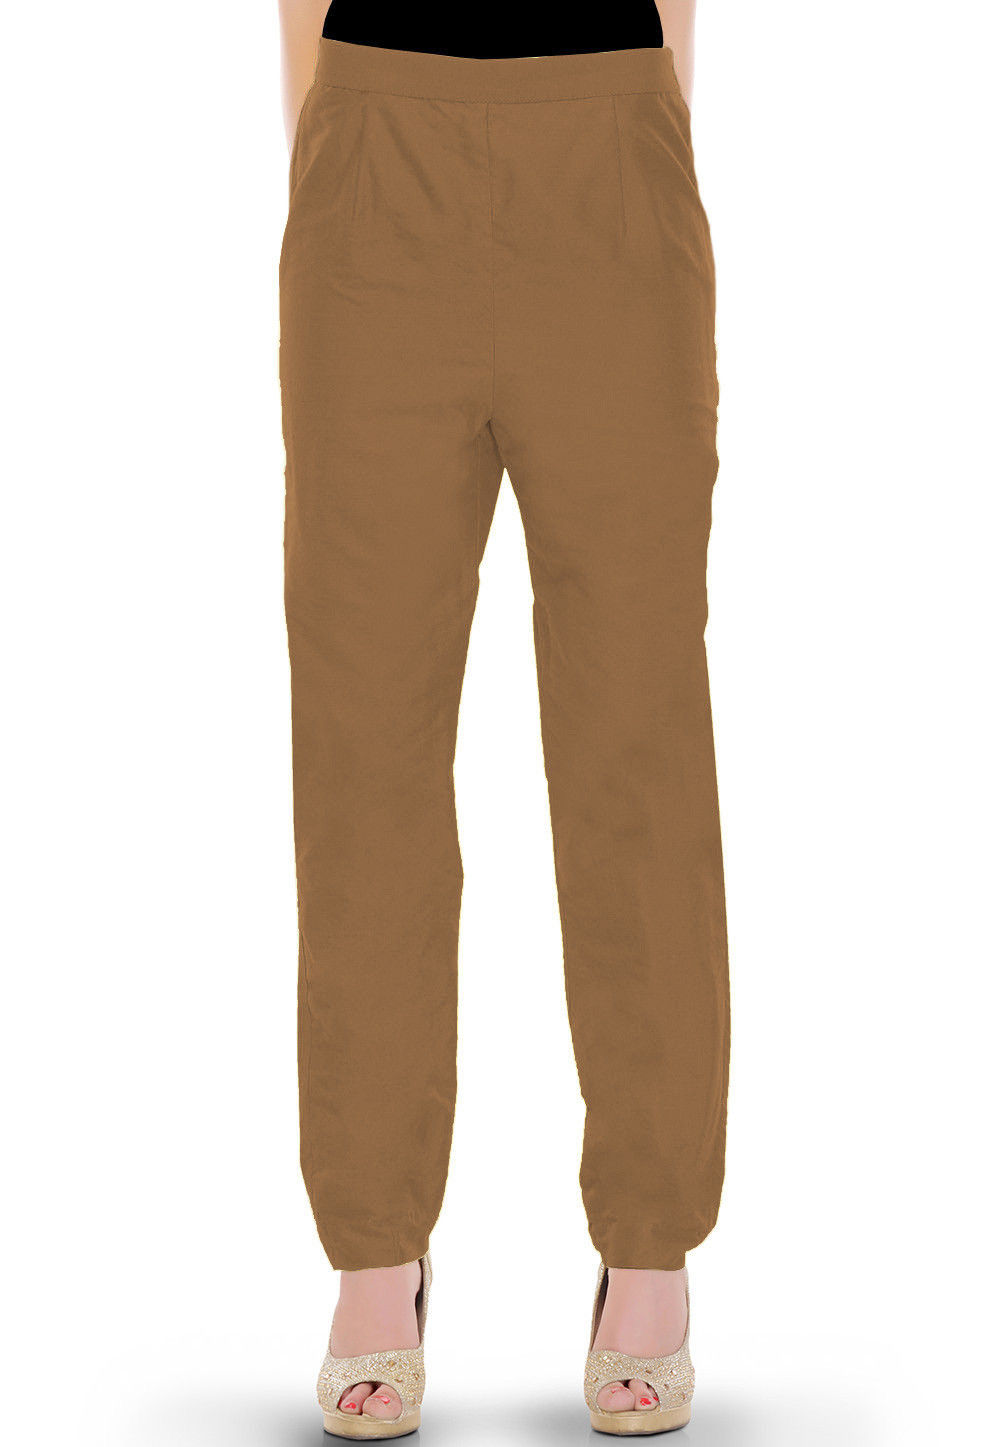 Solid Color Cotton Silk Pant in Beige